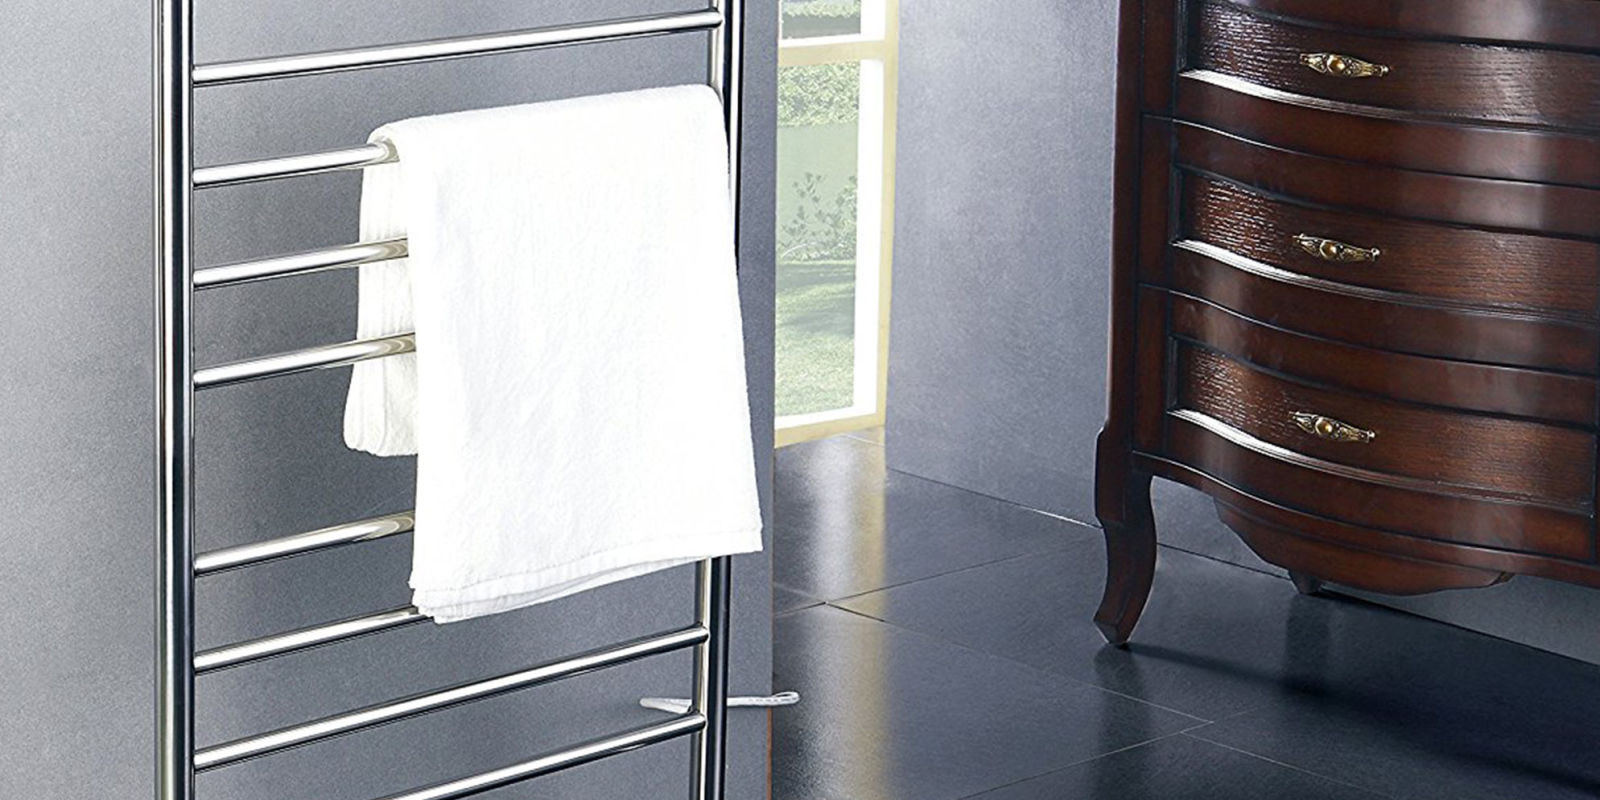 How to Purchase Heated Towel Rack Sydney without Hassle?